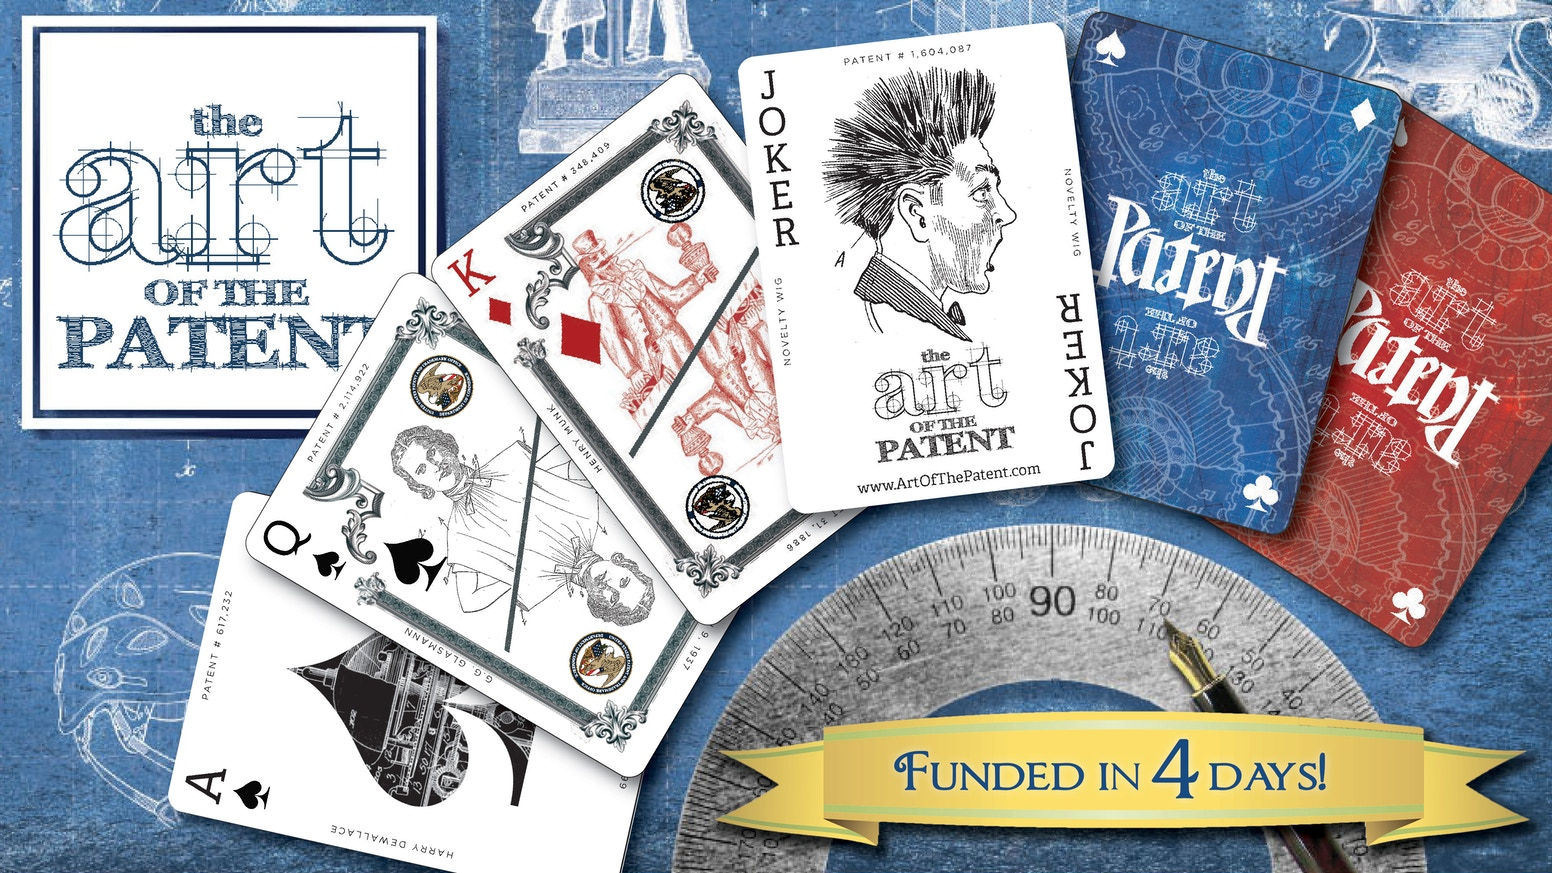 Success! Now taking pre-orders through BackerKit...Celebrate over 200 years of the most famous and bizarre patent artwork through playing cards! One line-art illustration per card.